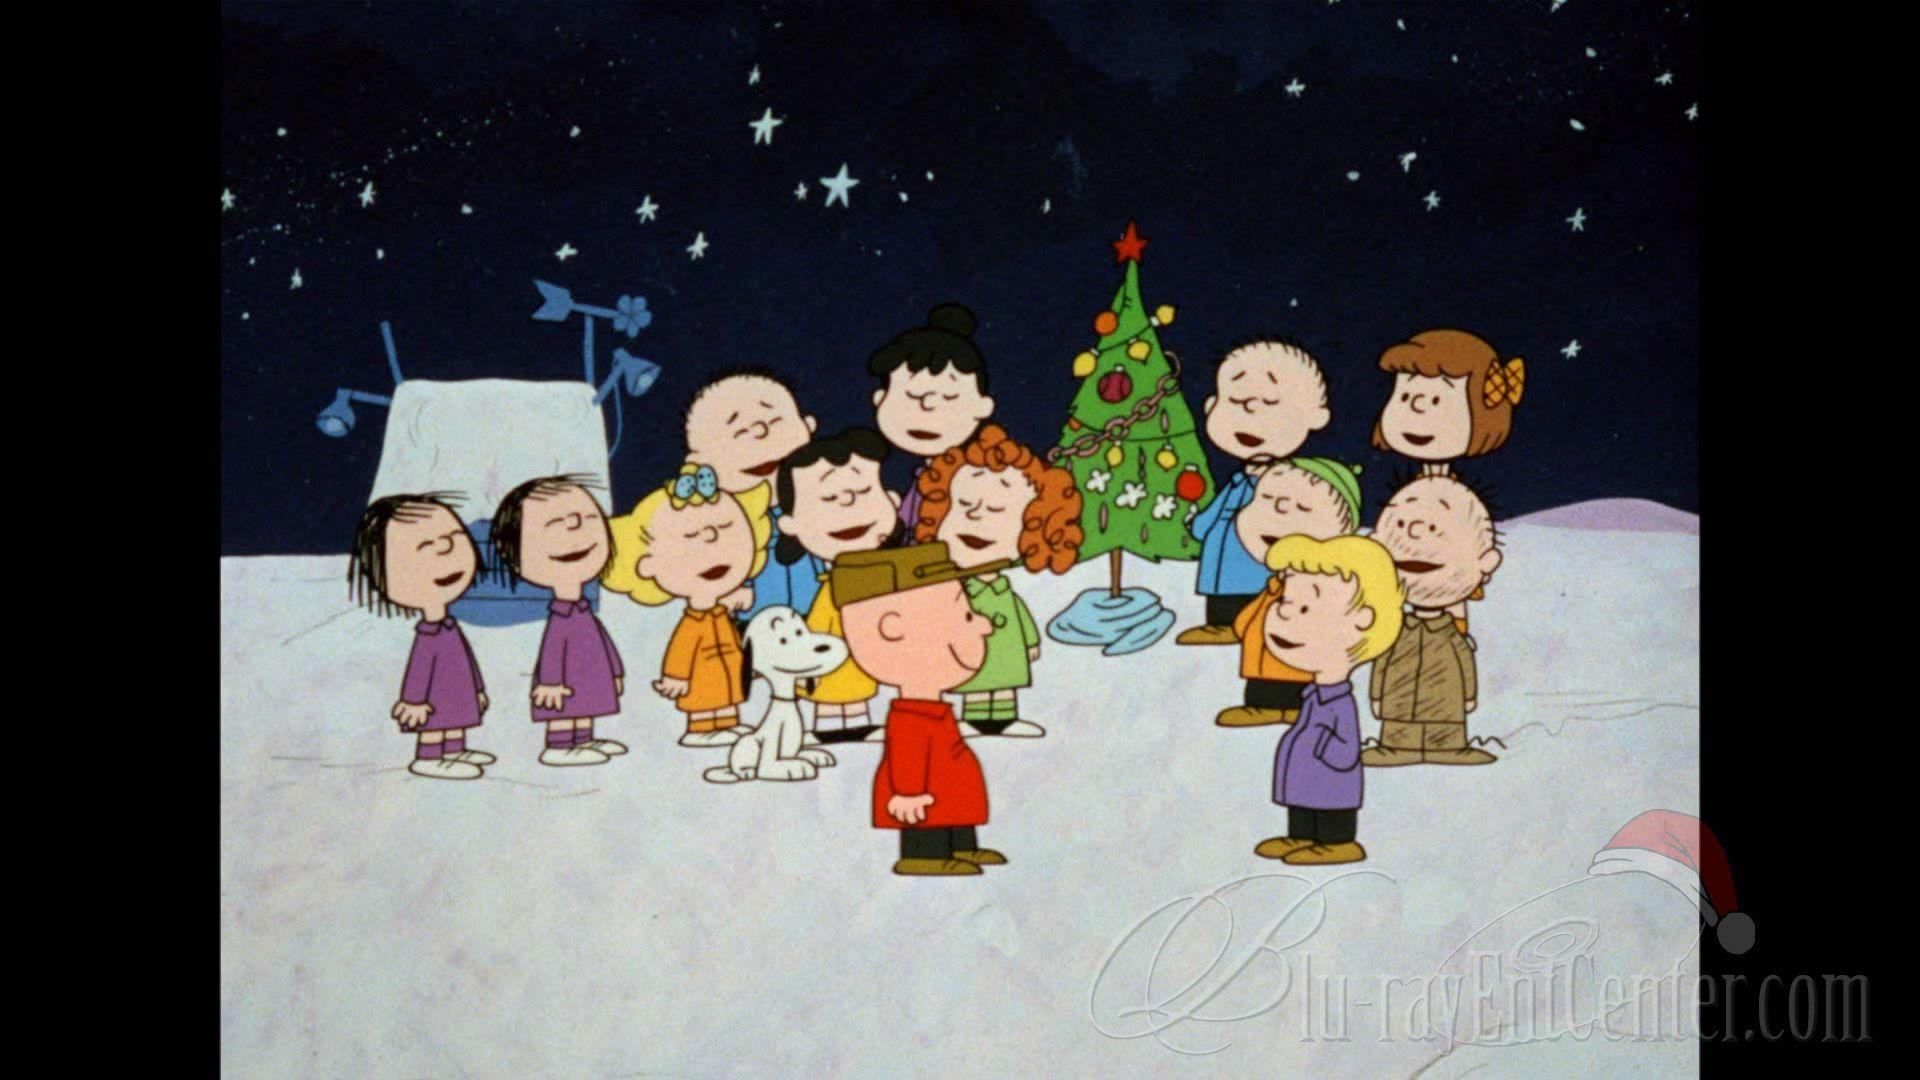 winter wallpaper charlie brown - photo #30